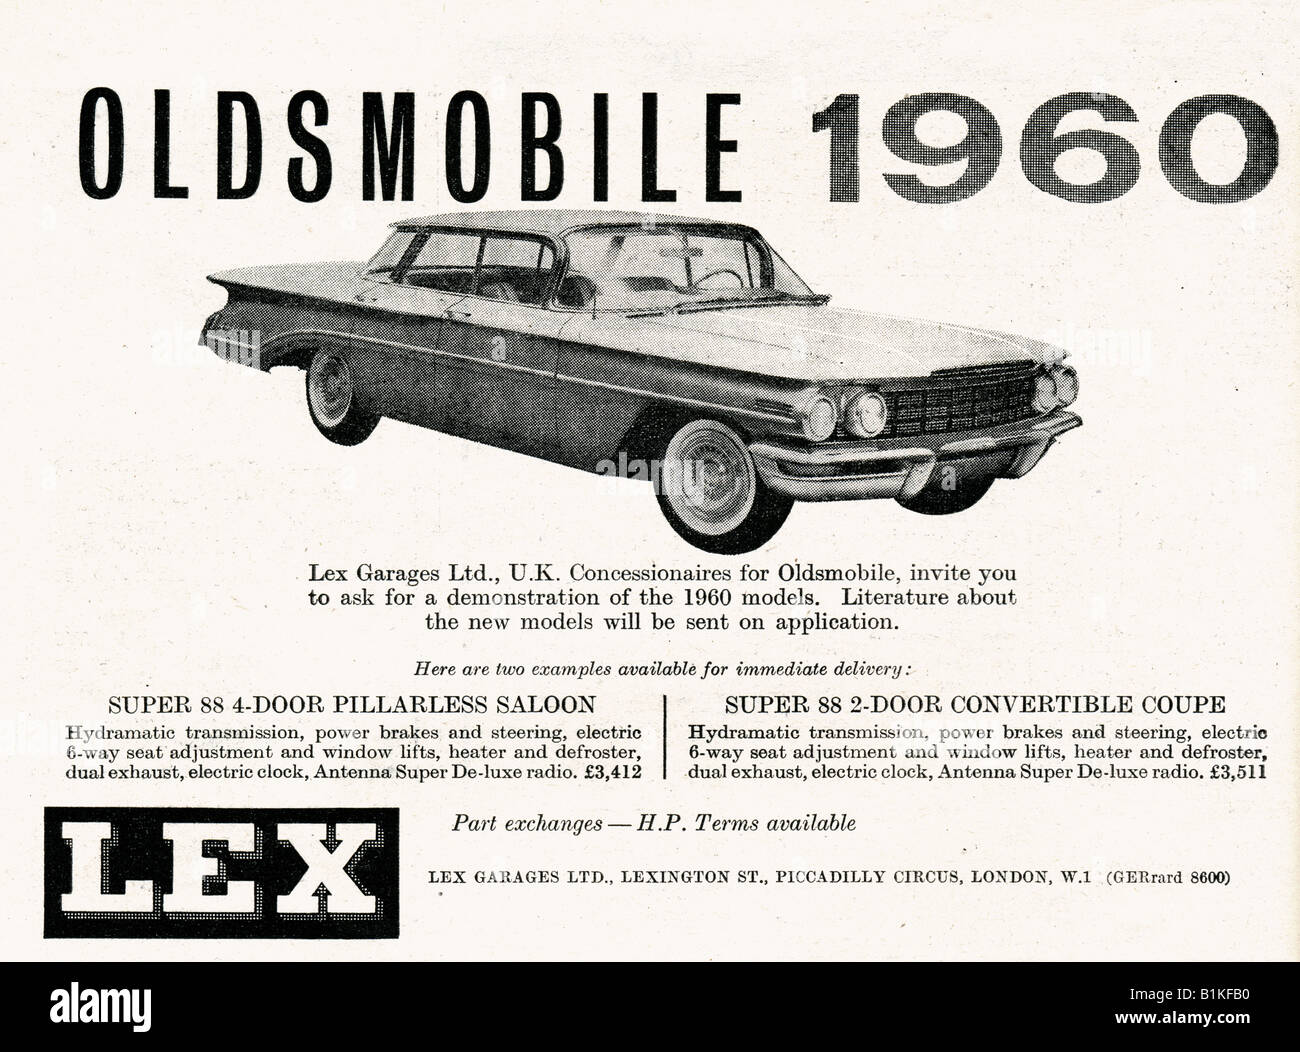 1960 advertisement for Oldsmobile American Motor Cars from Lex Garages London FOR EDITORIAL USE ONLY - Stock Image